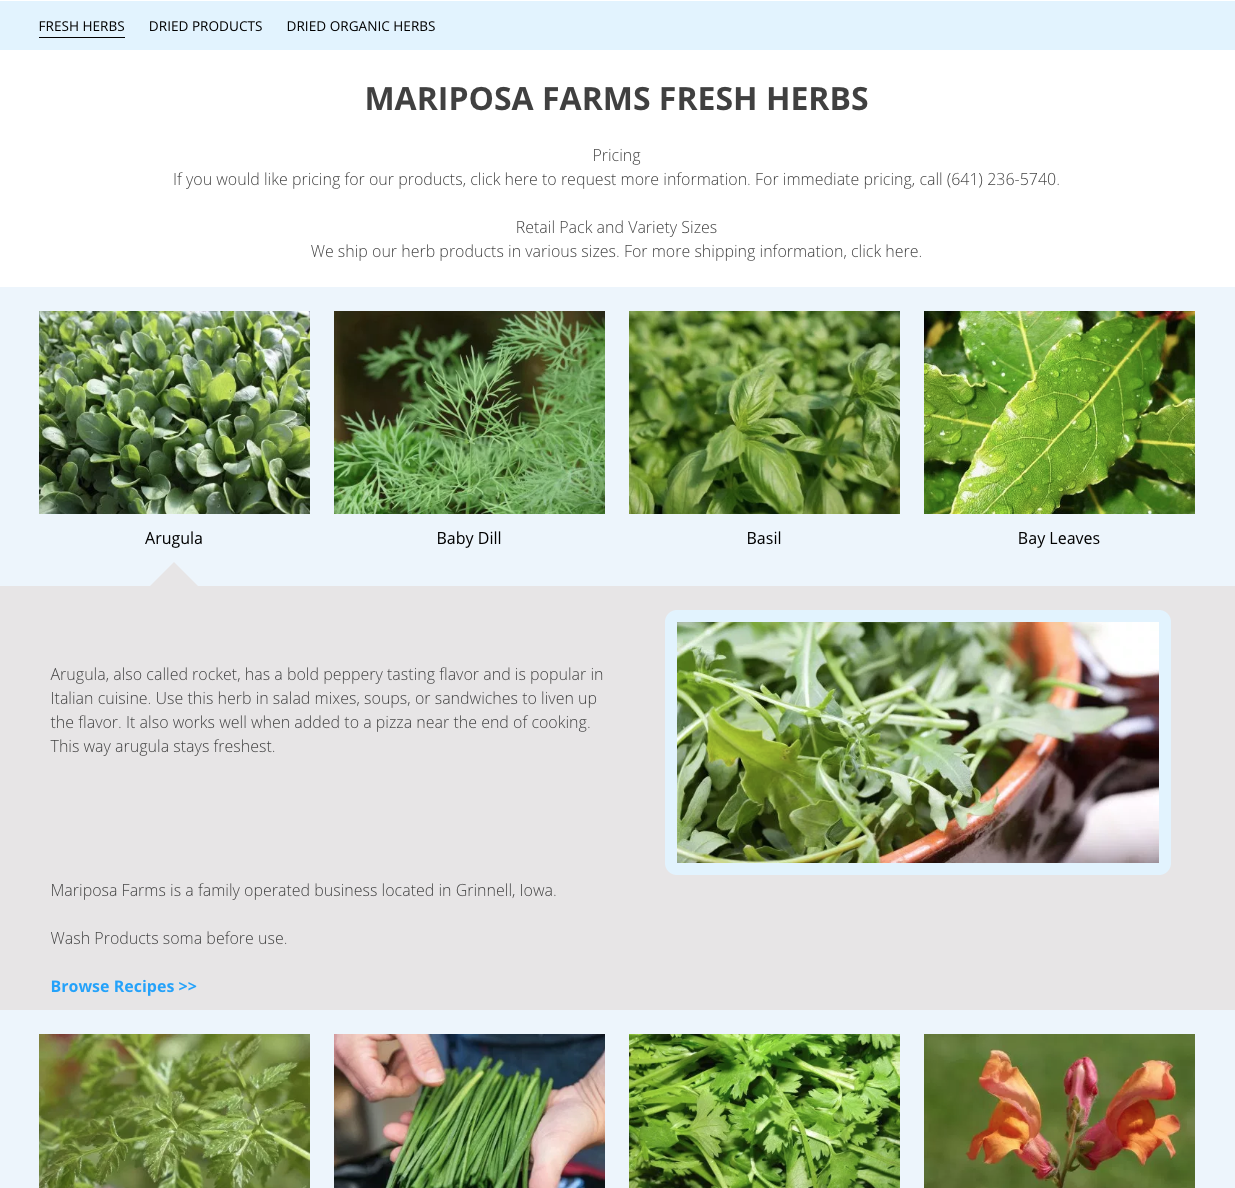 Mariposa Products